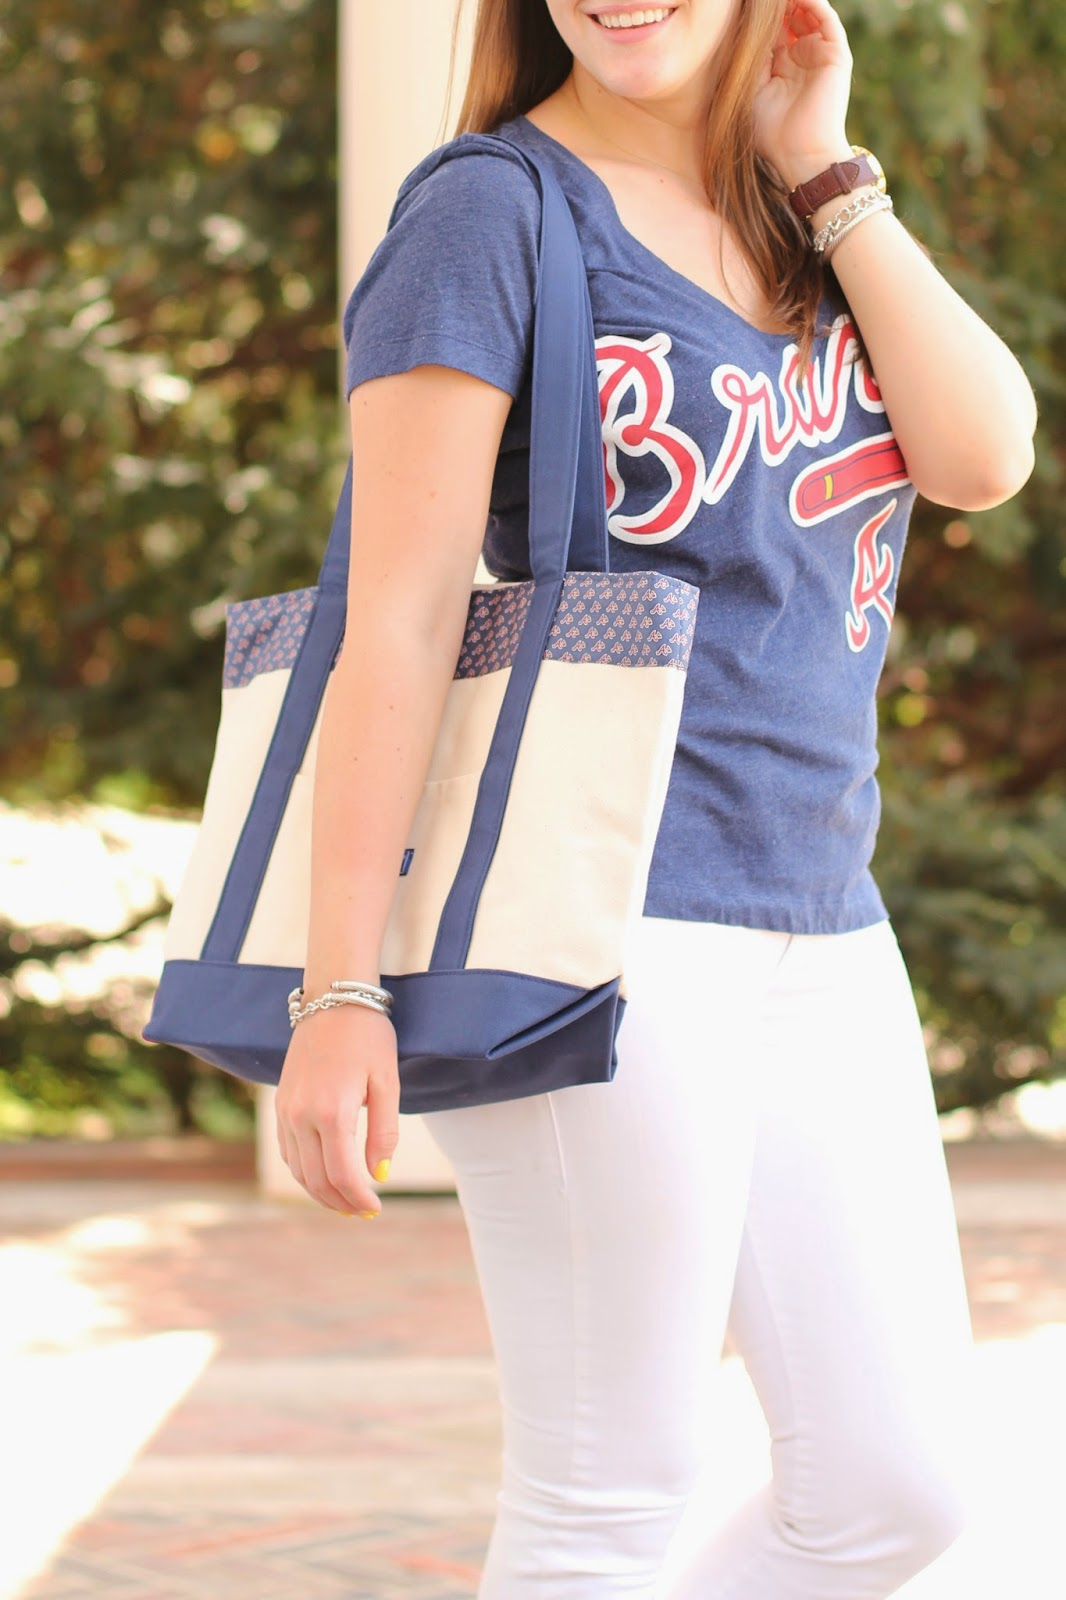 Atlanta Braves Inspired Outfit